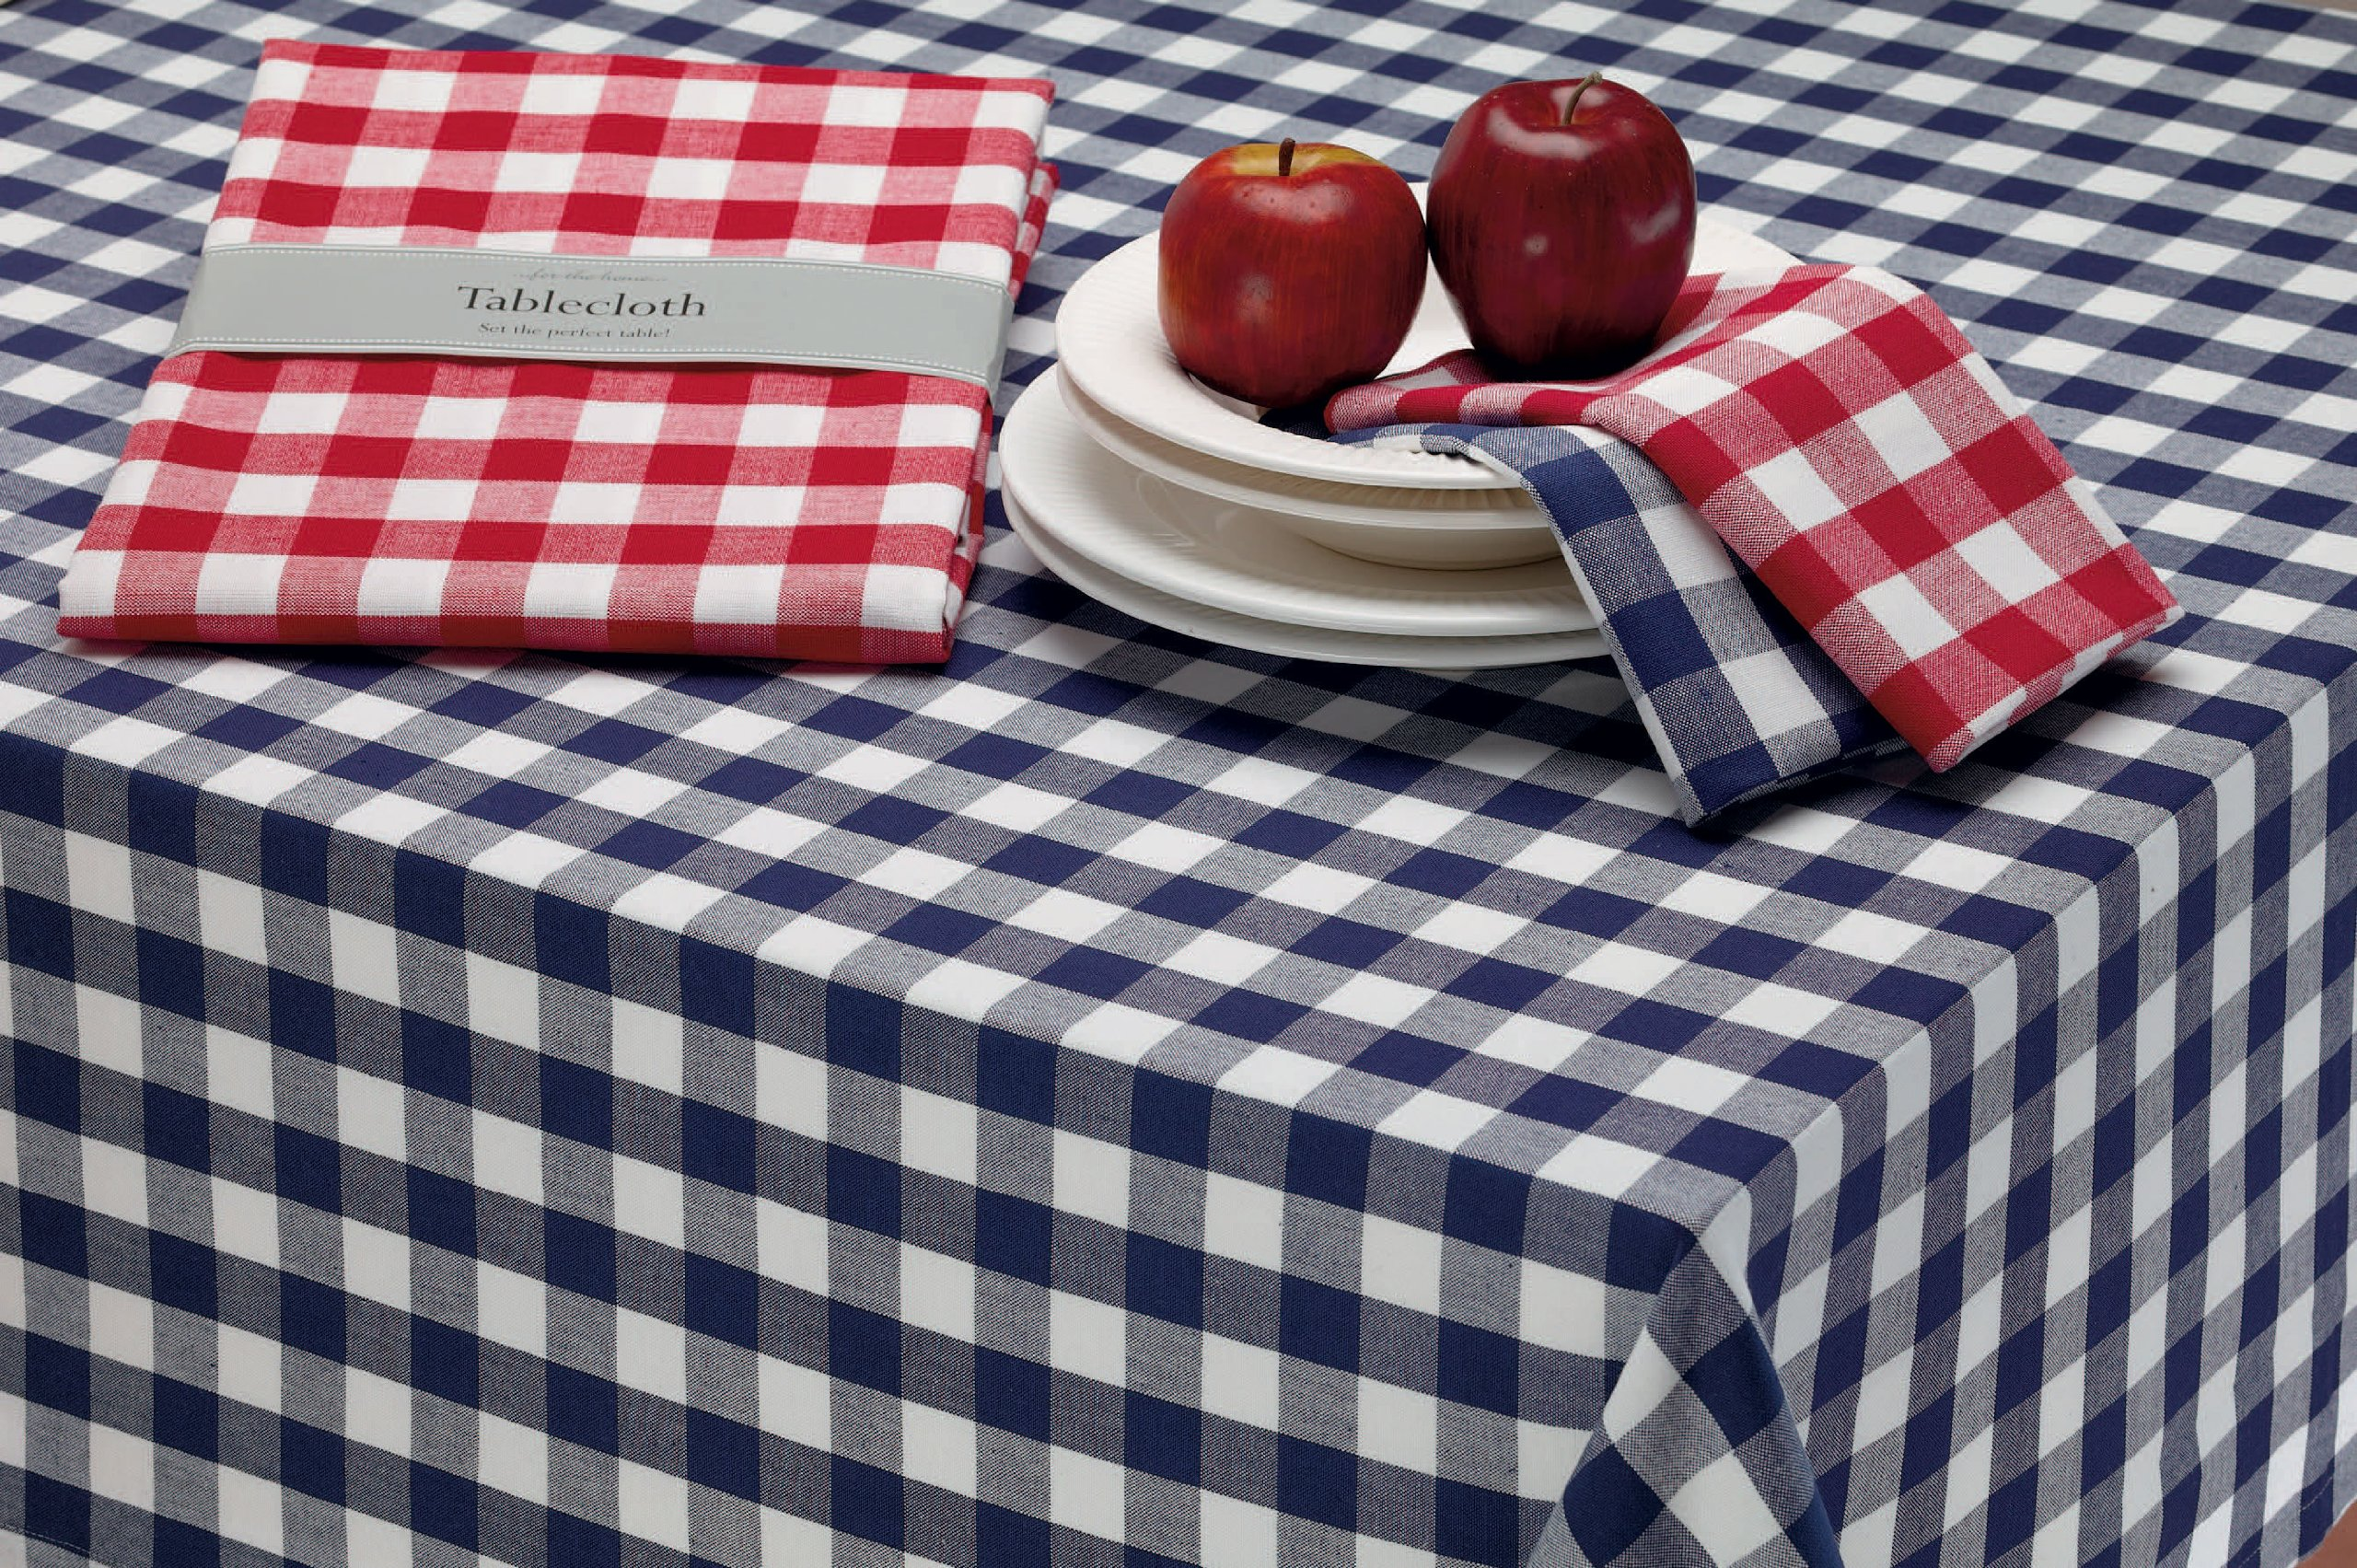 DII Oversized 20x20 Cotton Napkin, Pack of 6, Red & White Check - Perfect for Fall, Thanksgiving, Farmhouse DÃcor, Christmas, Picnics & Potlucks or Everyday Use by DII (Image #11)